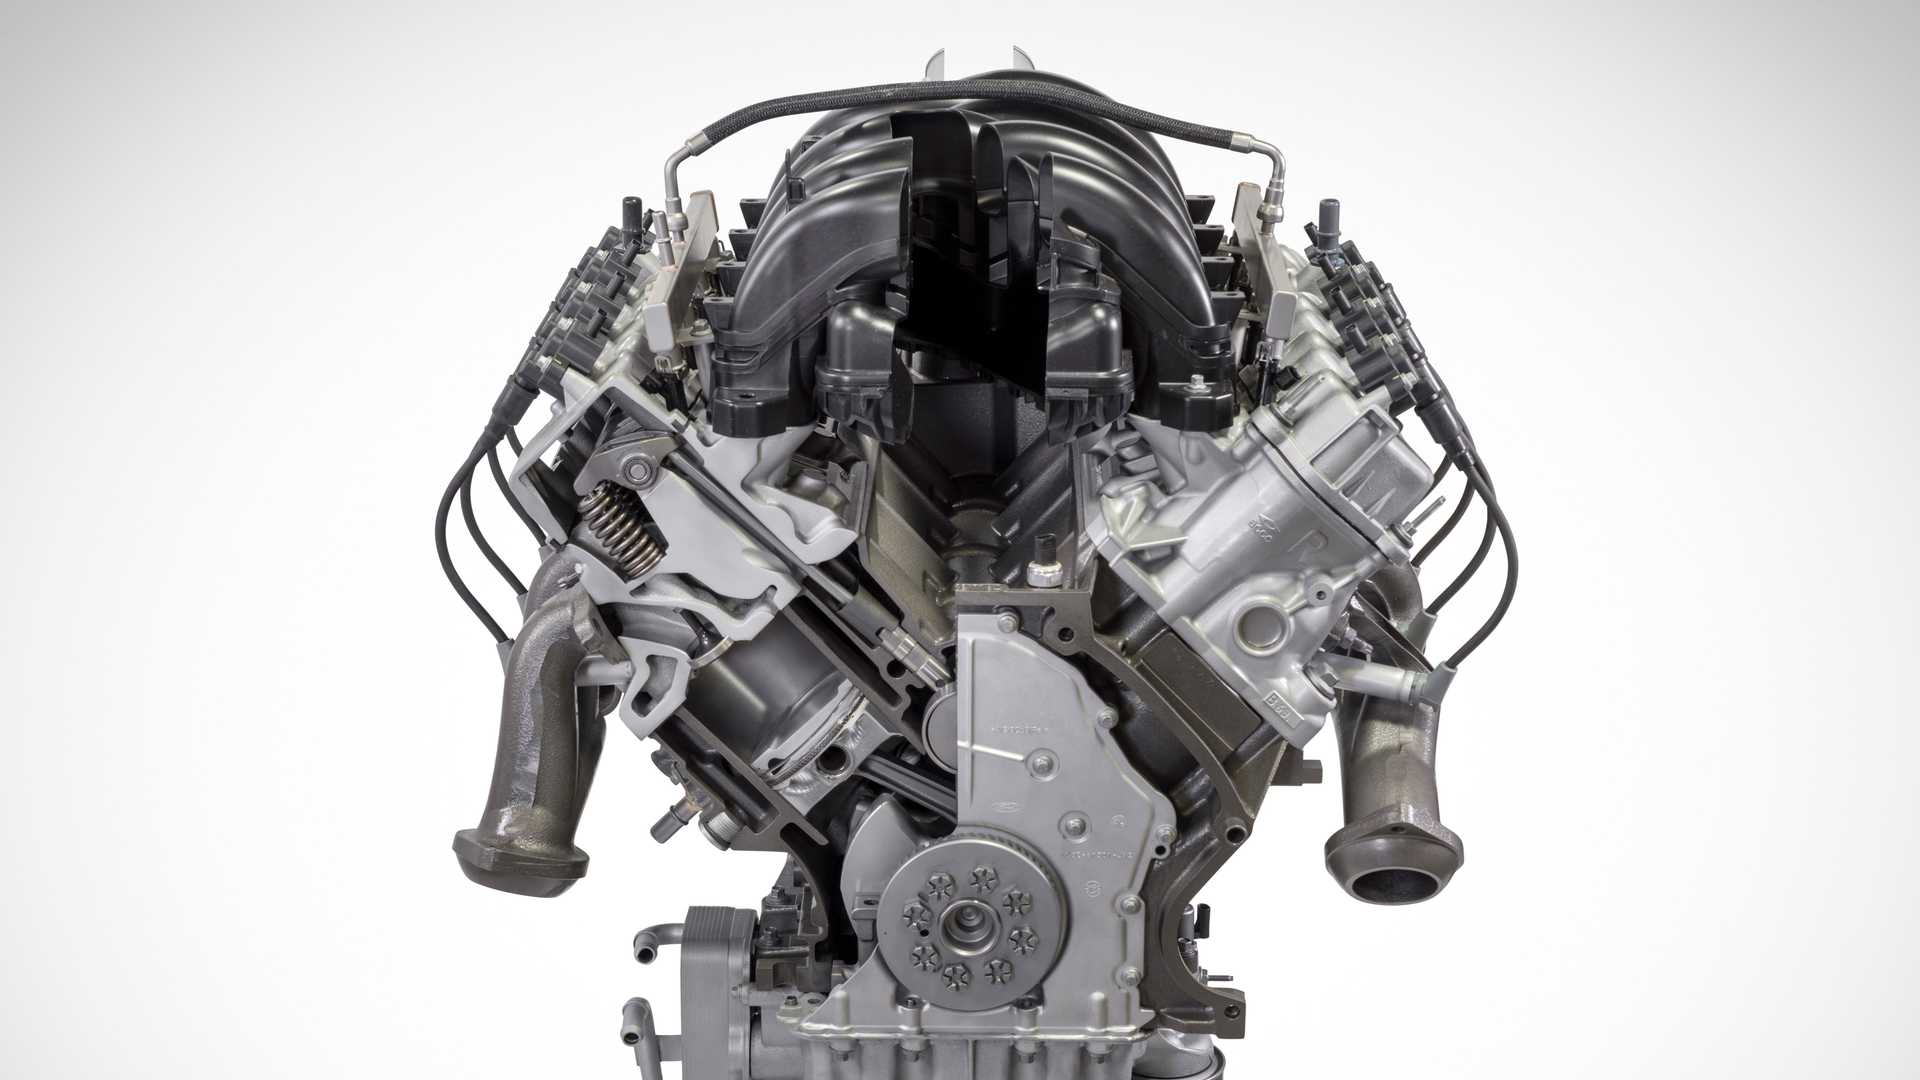 2020 Ford Super Duty's New 7 3-liter V8 Detailed, Up To 430 HP